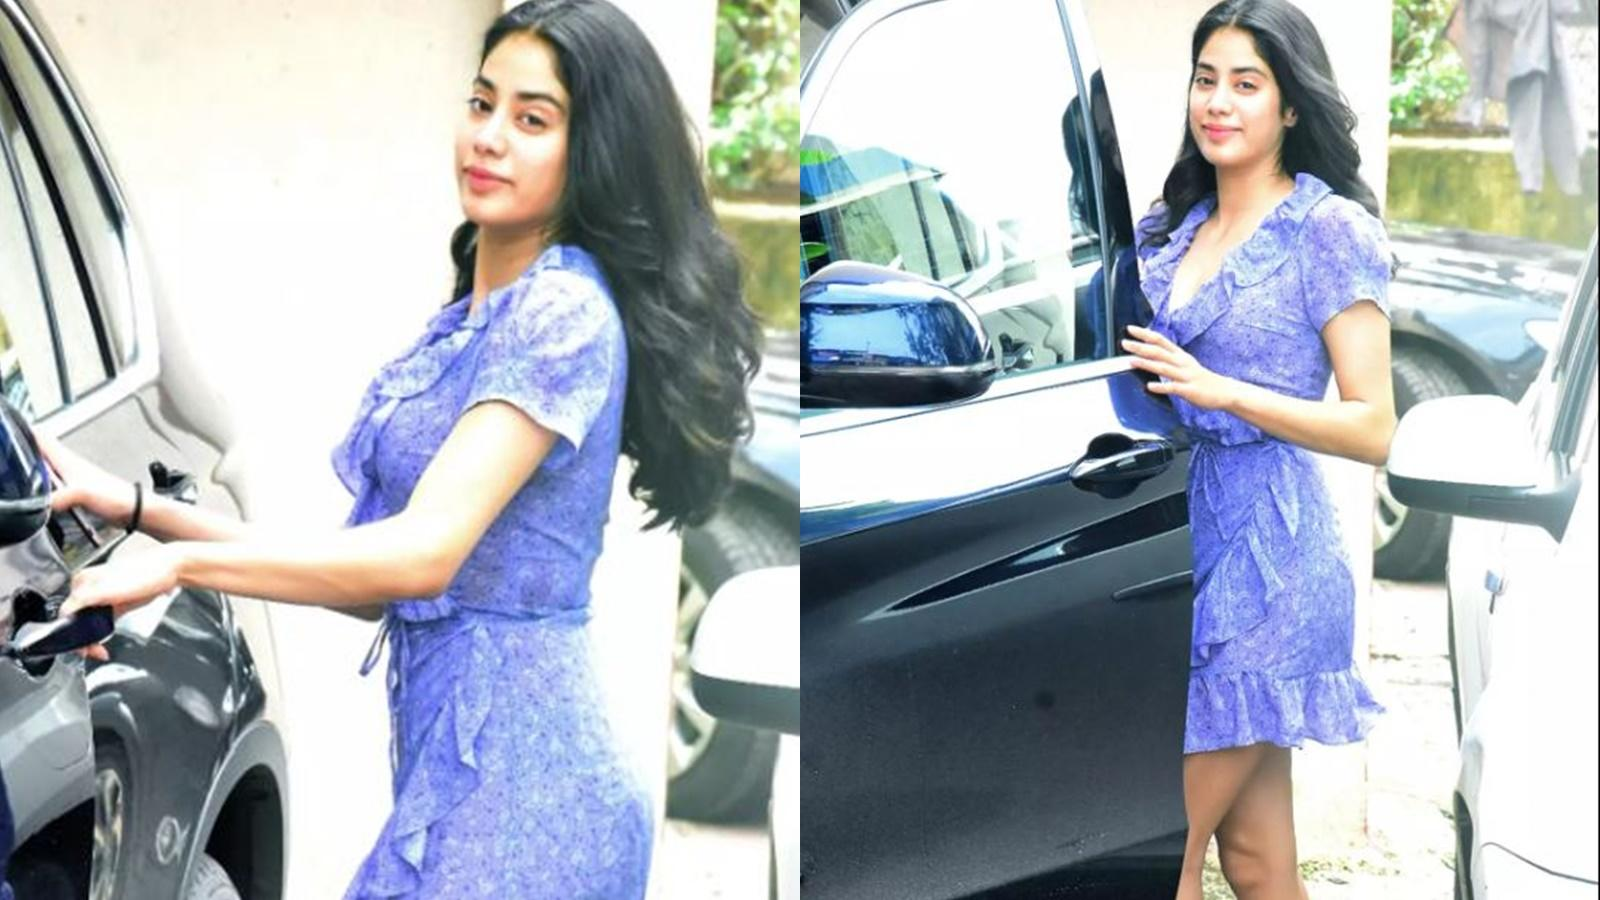 janhvi-kapoor-ditches-gym-wear-for-a-short-dress-gets-papped-outside-her-gym